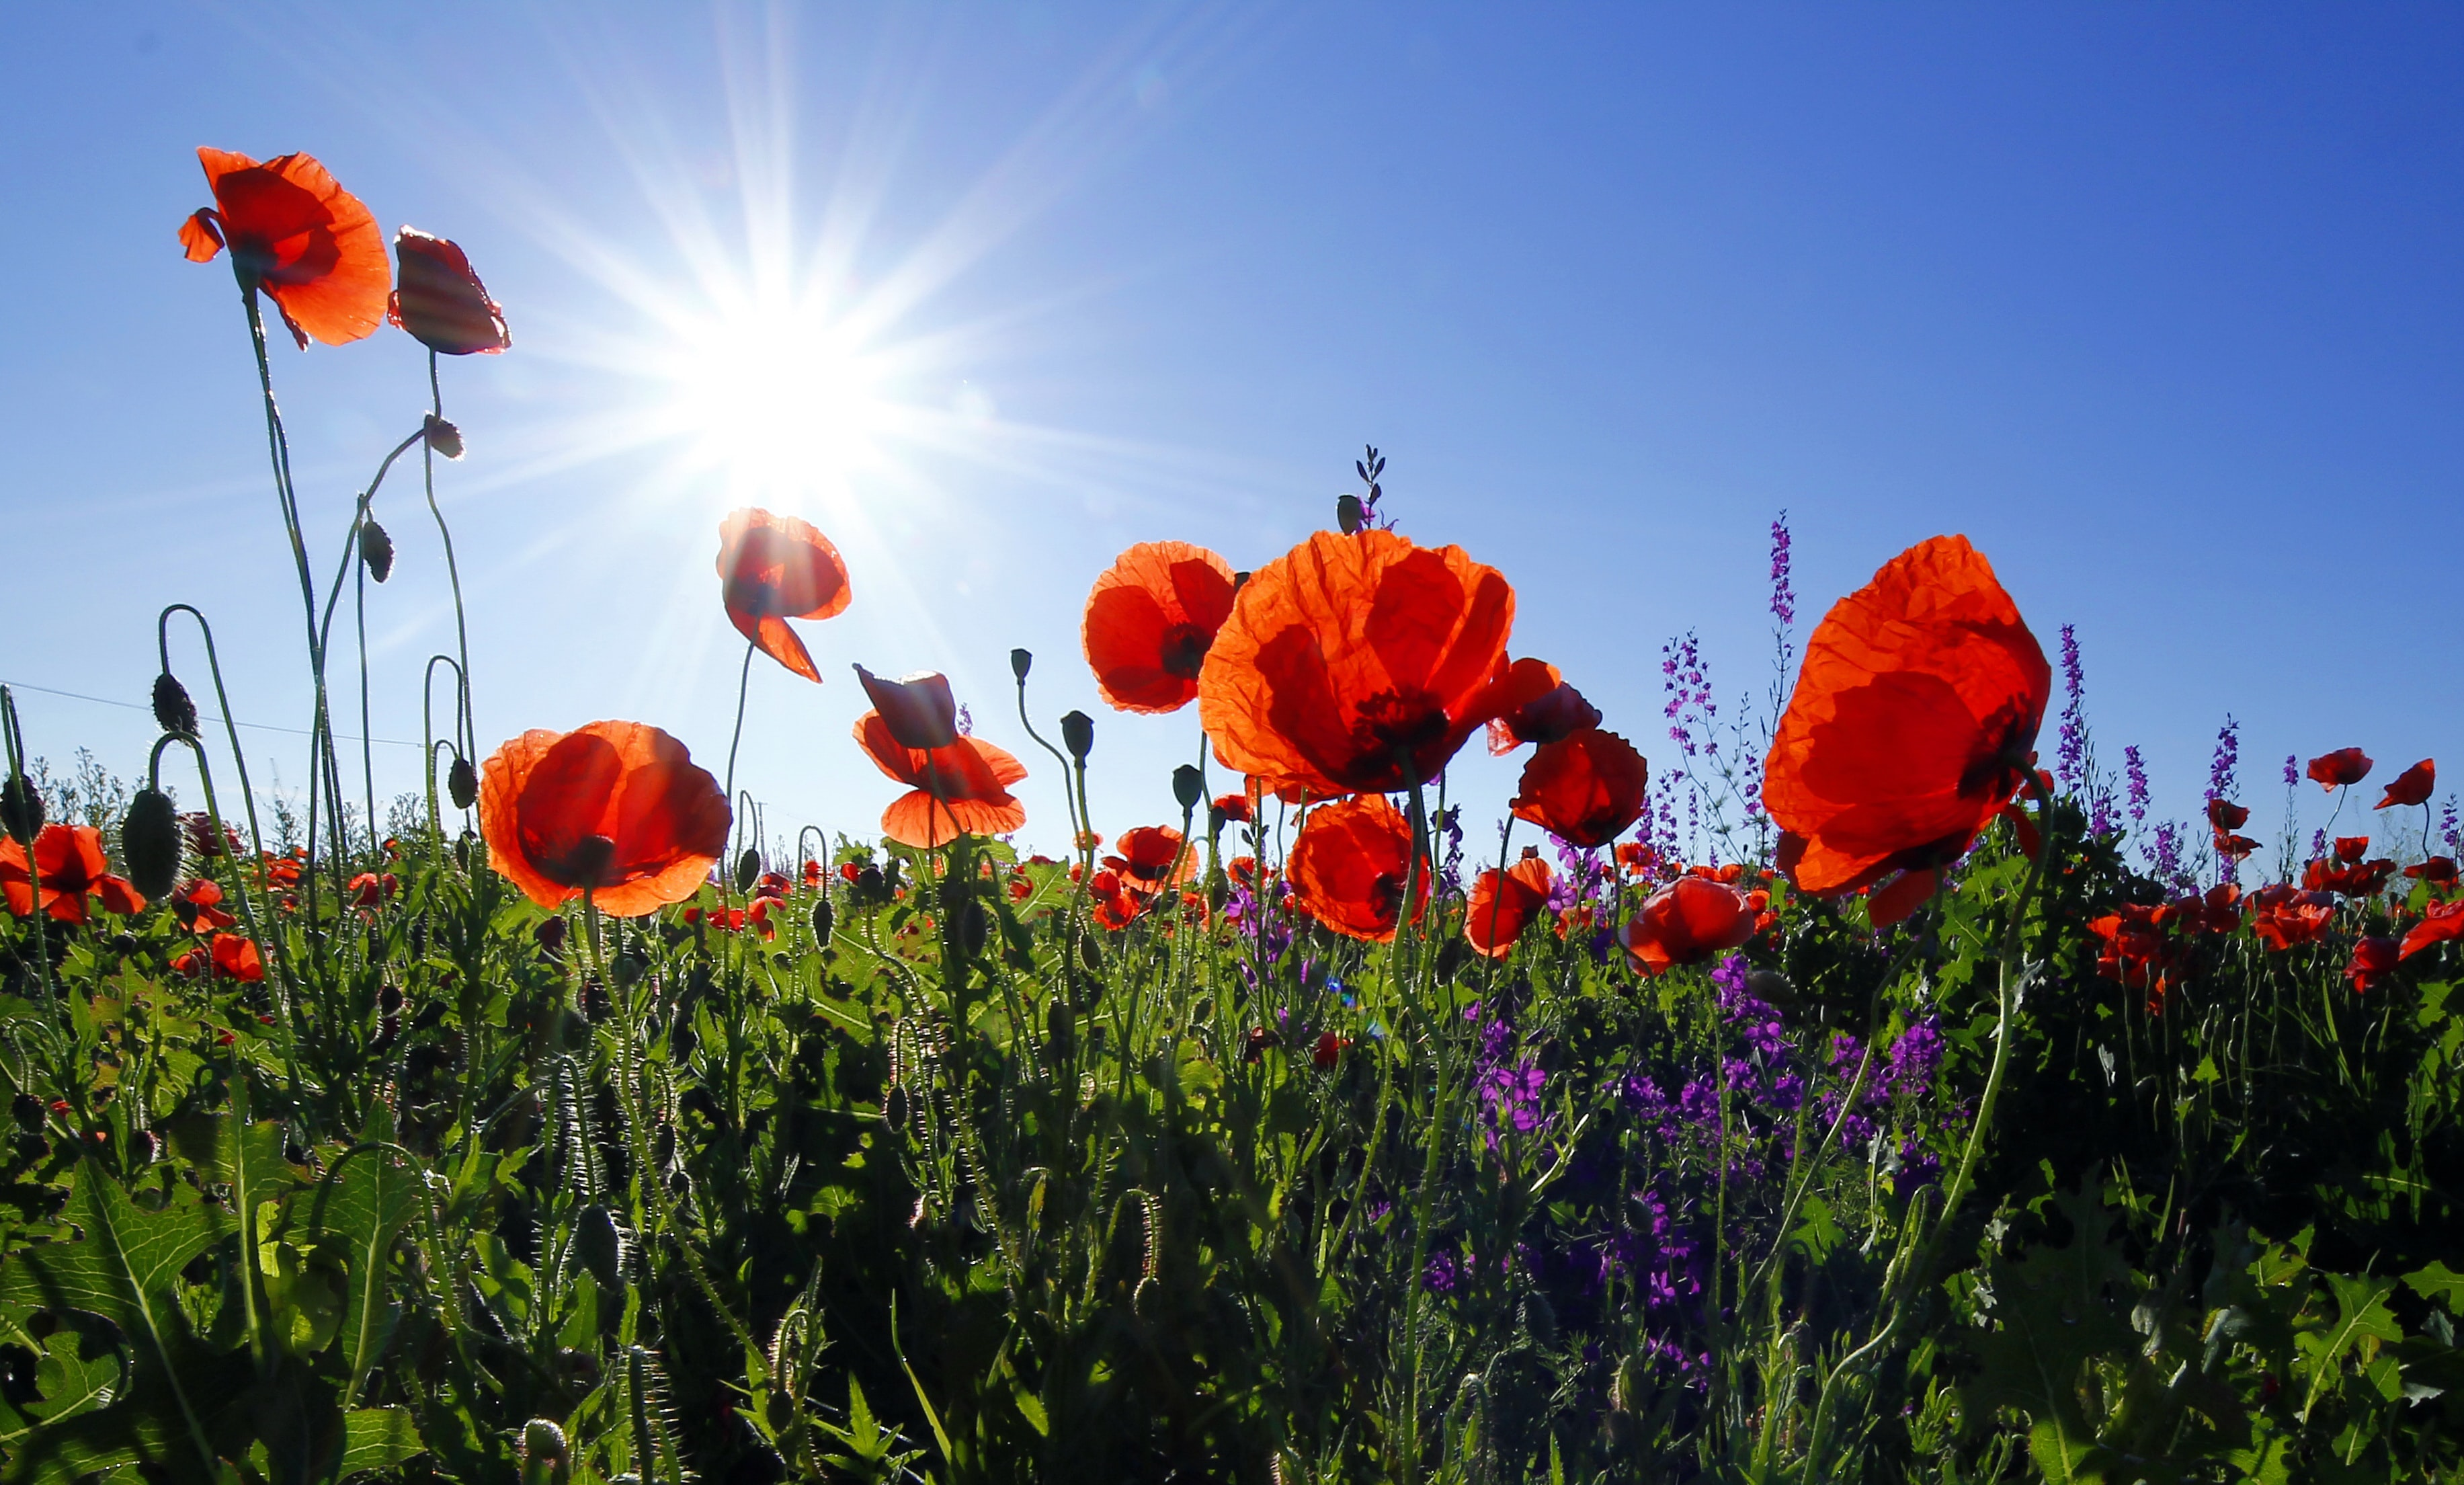 A low shot of a field of red poppies under a bright sun on a clear sky